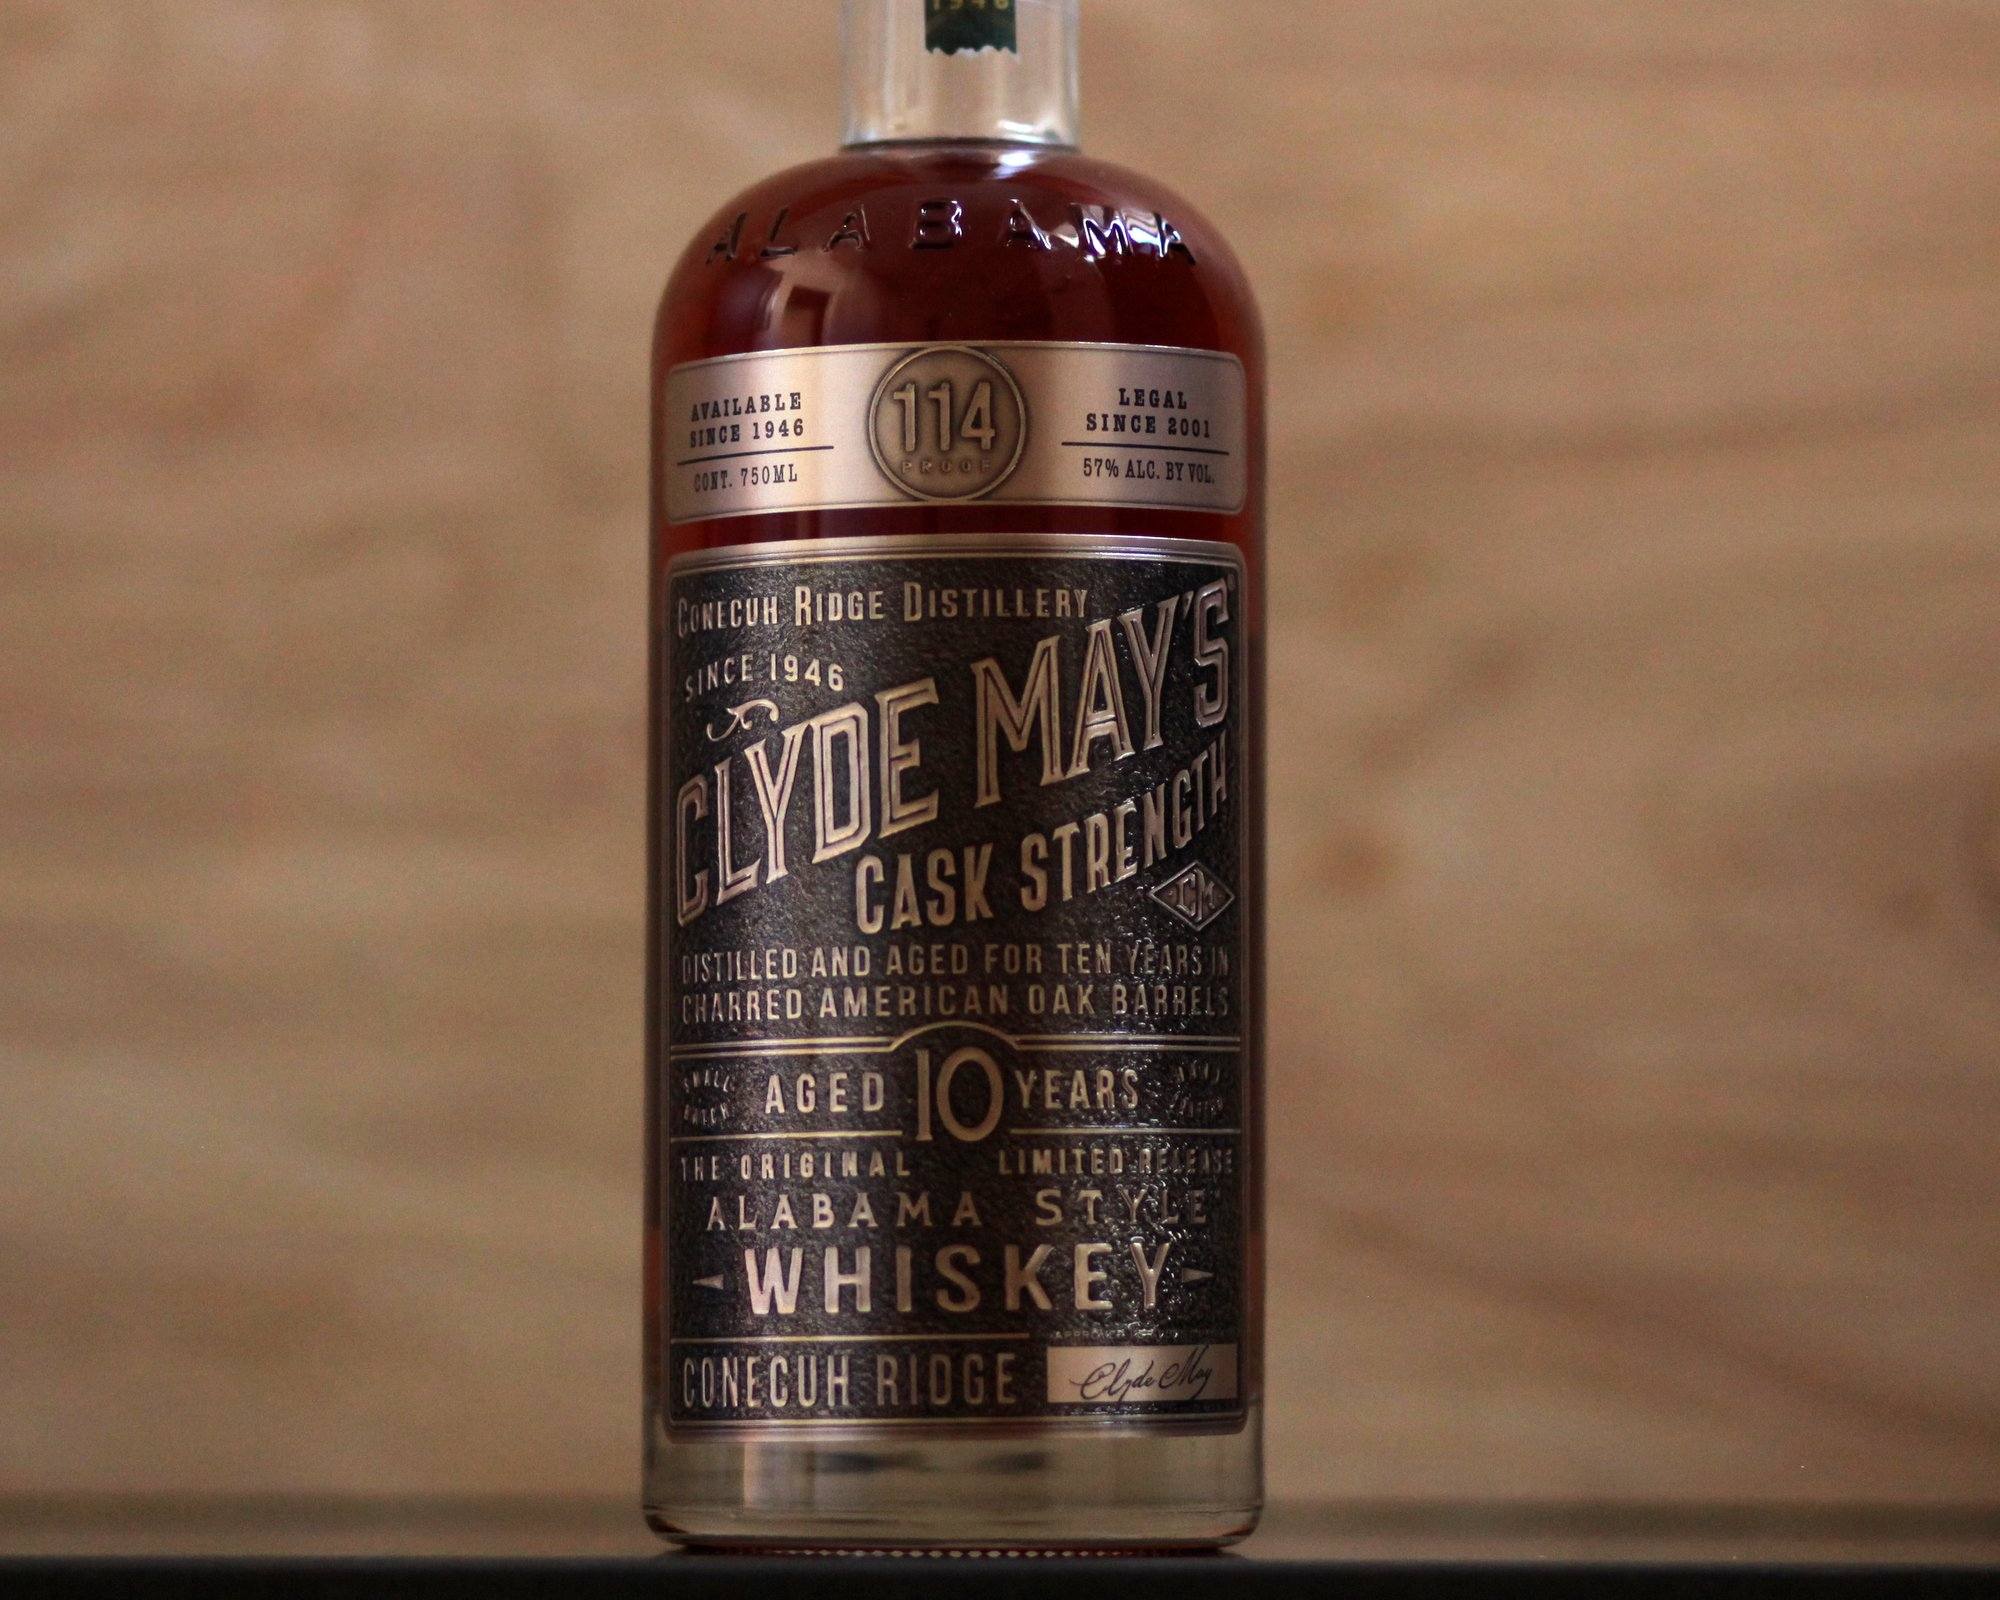 Clyde May's Cask Strength 10 Year Whiskey